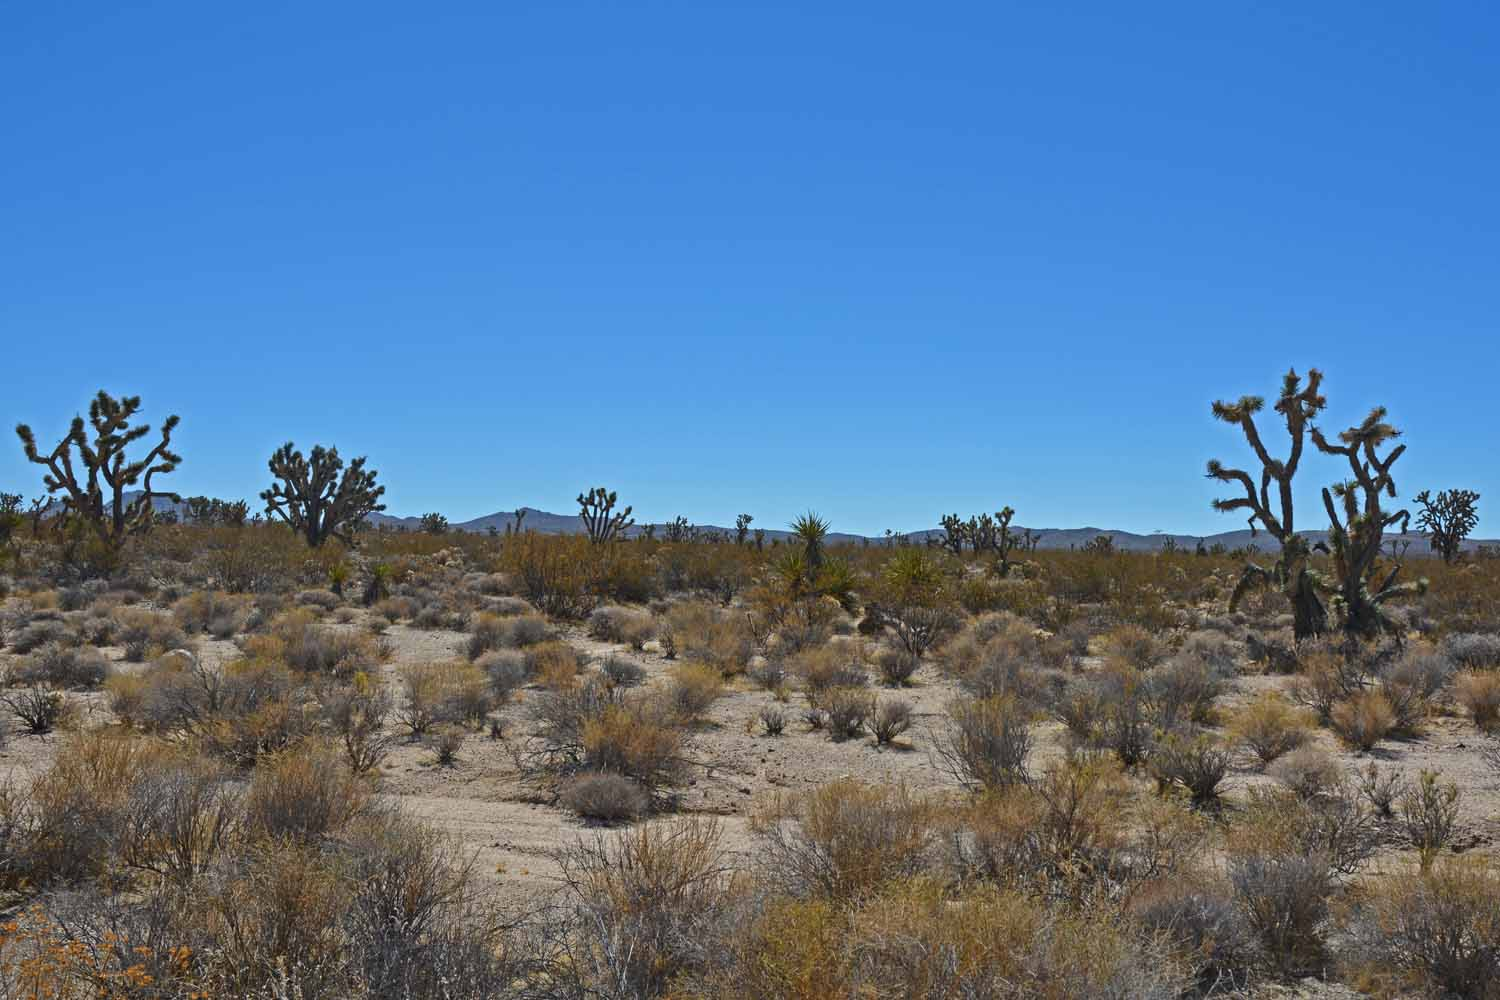 This picture is true Mojave Desert.